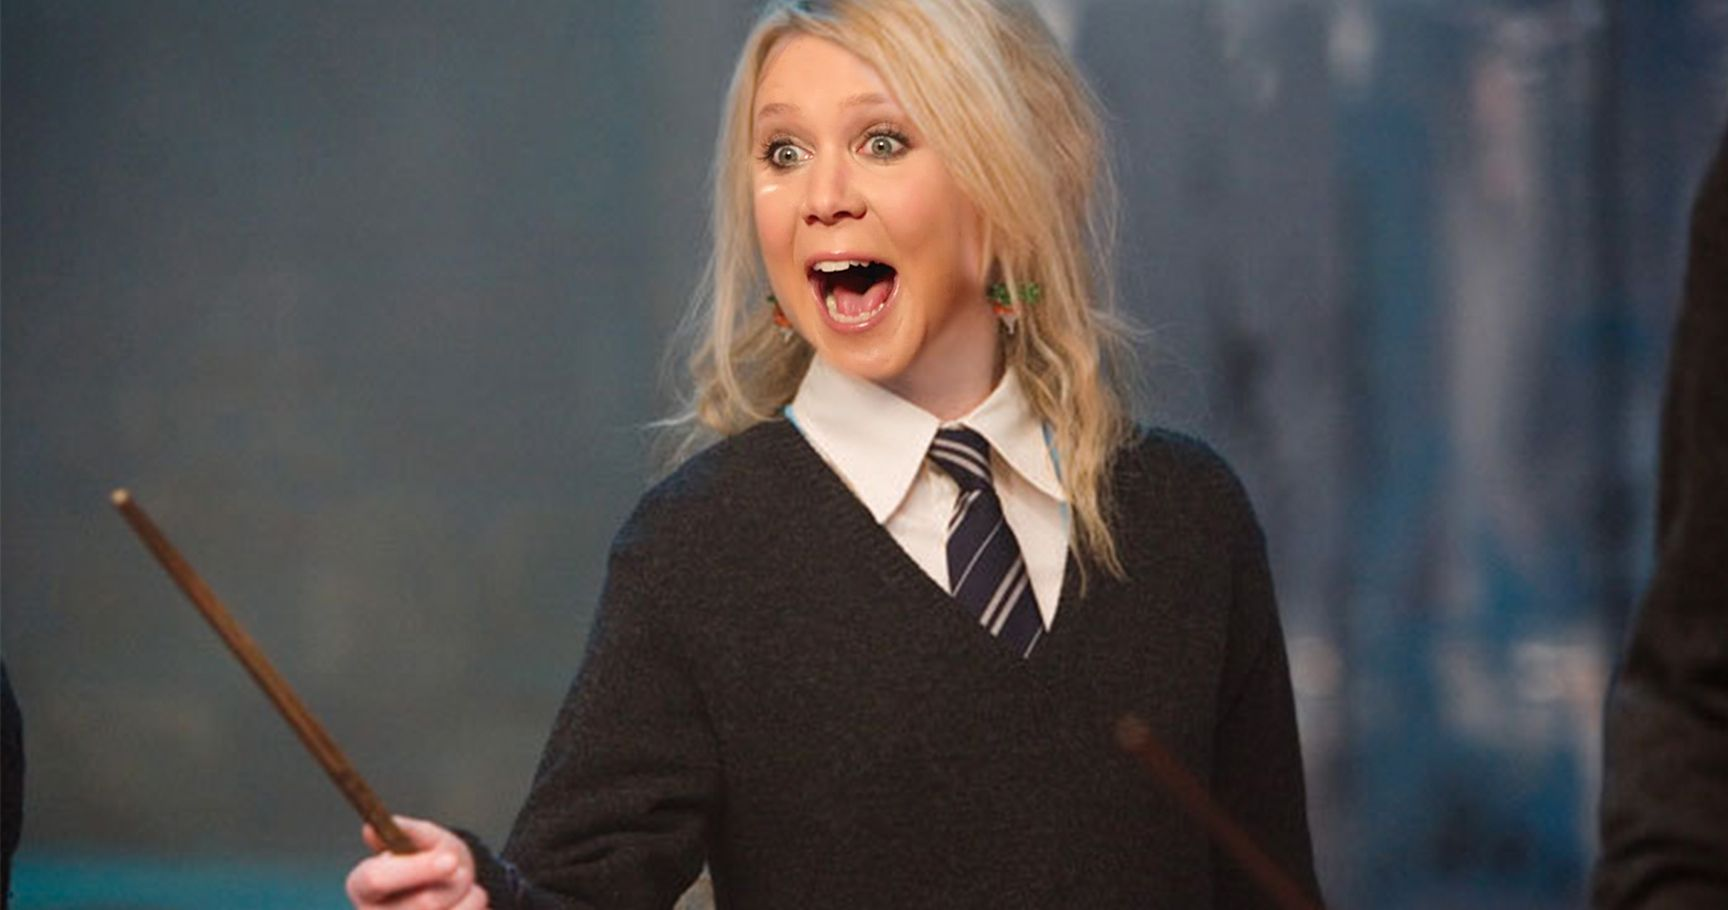 15 Celebrities Who Are Total Ravenclaws